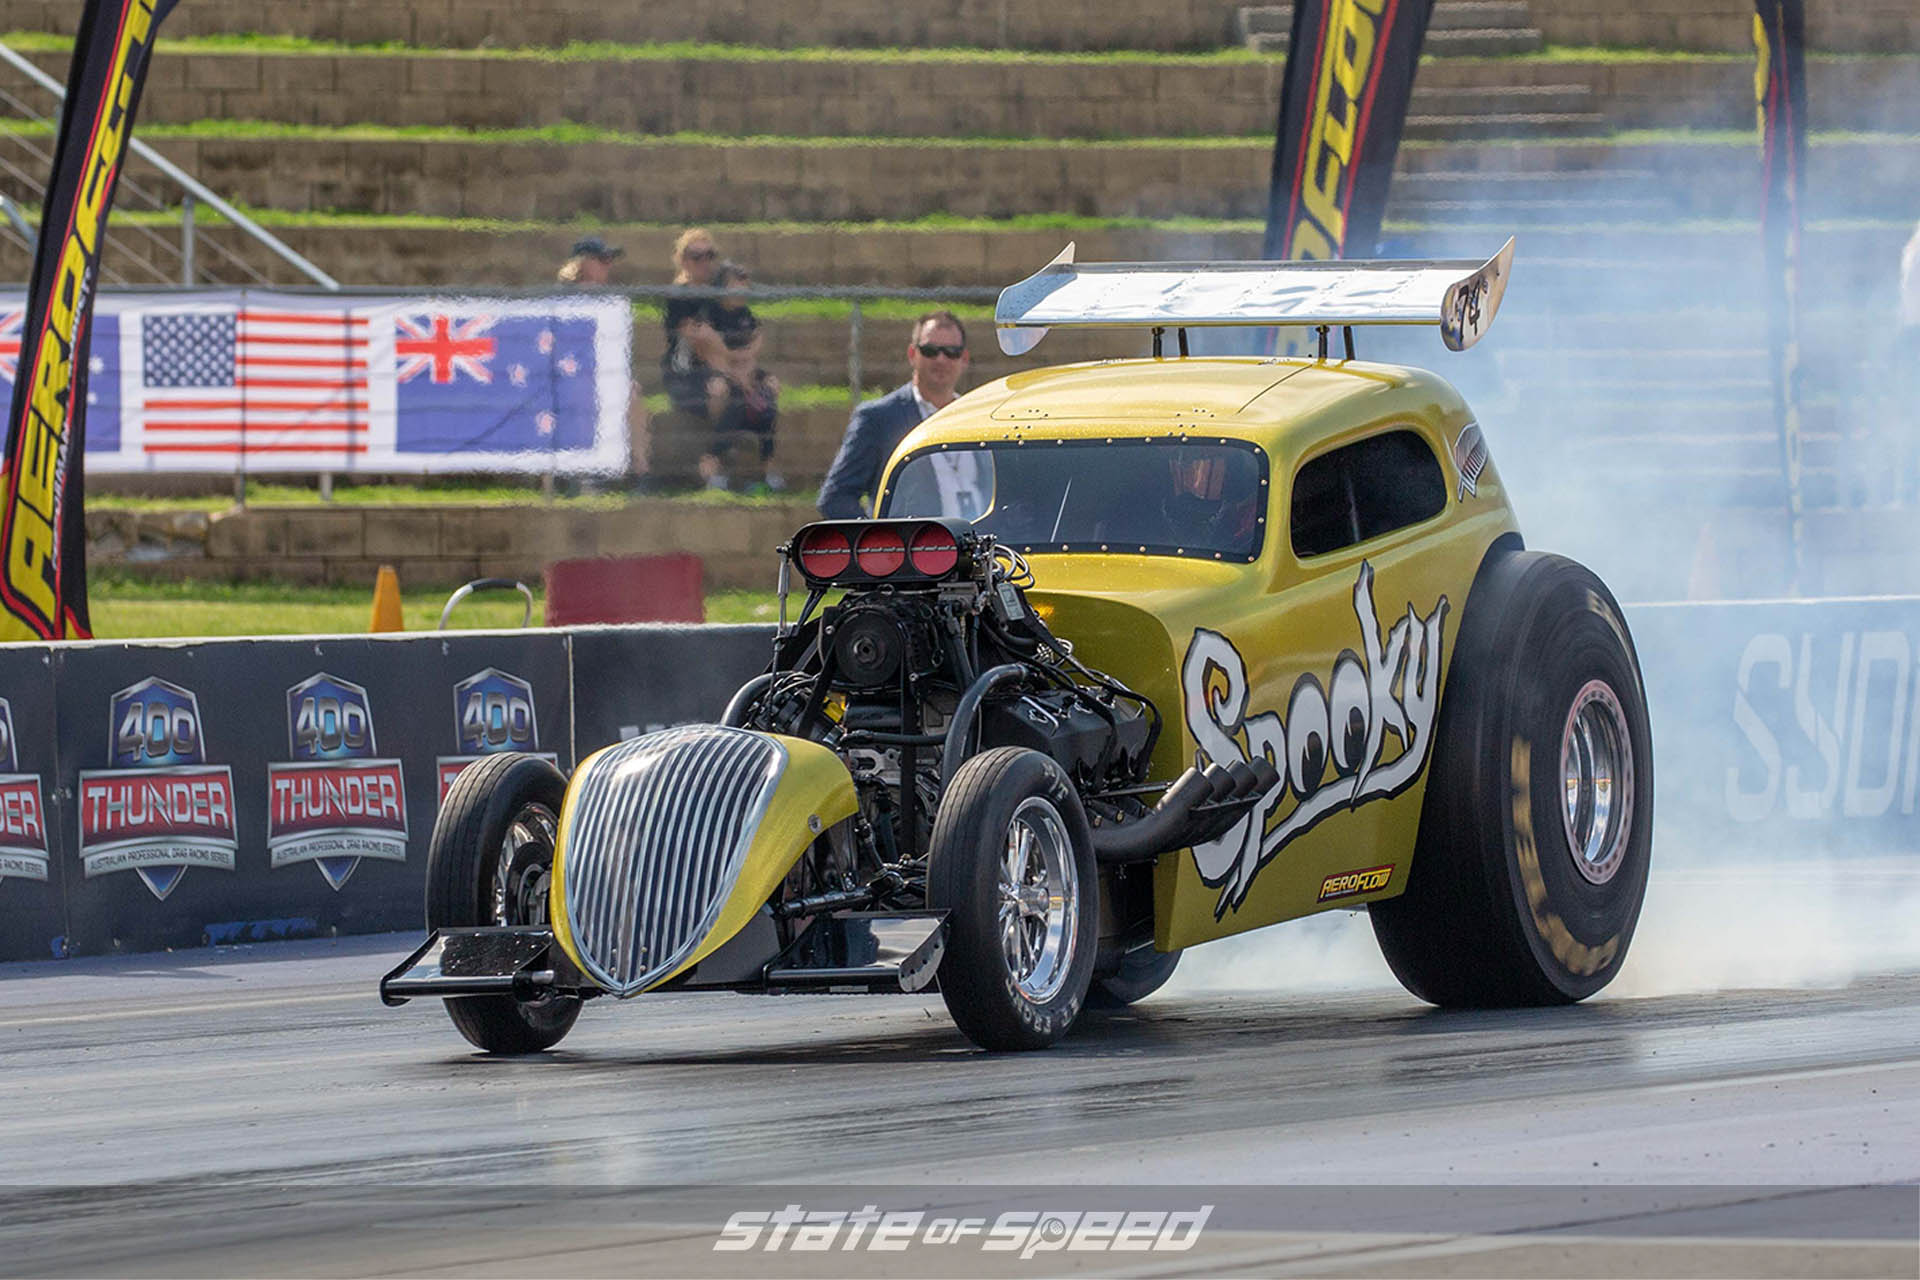 Fuel Altered Dragster at the track